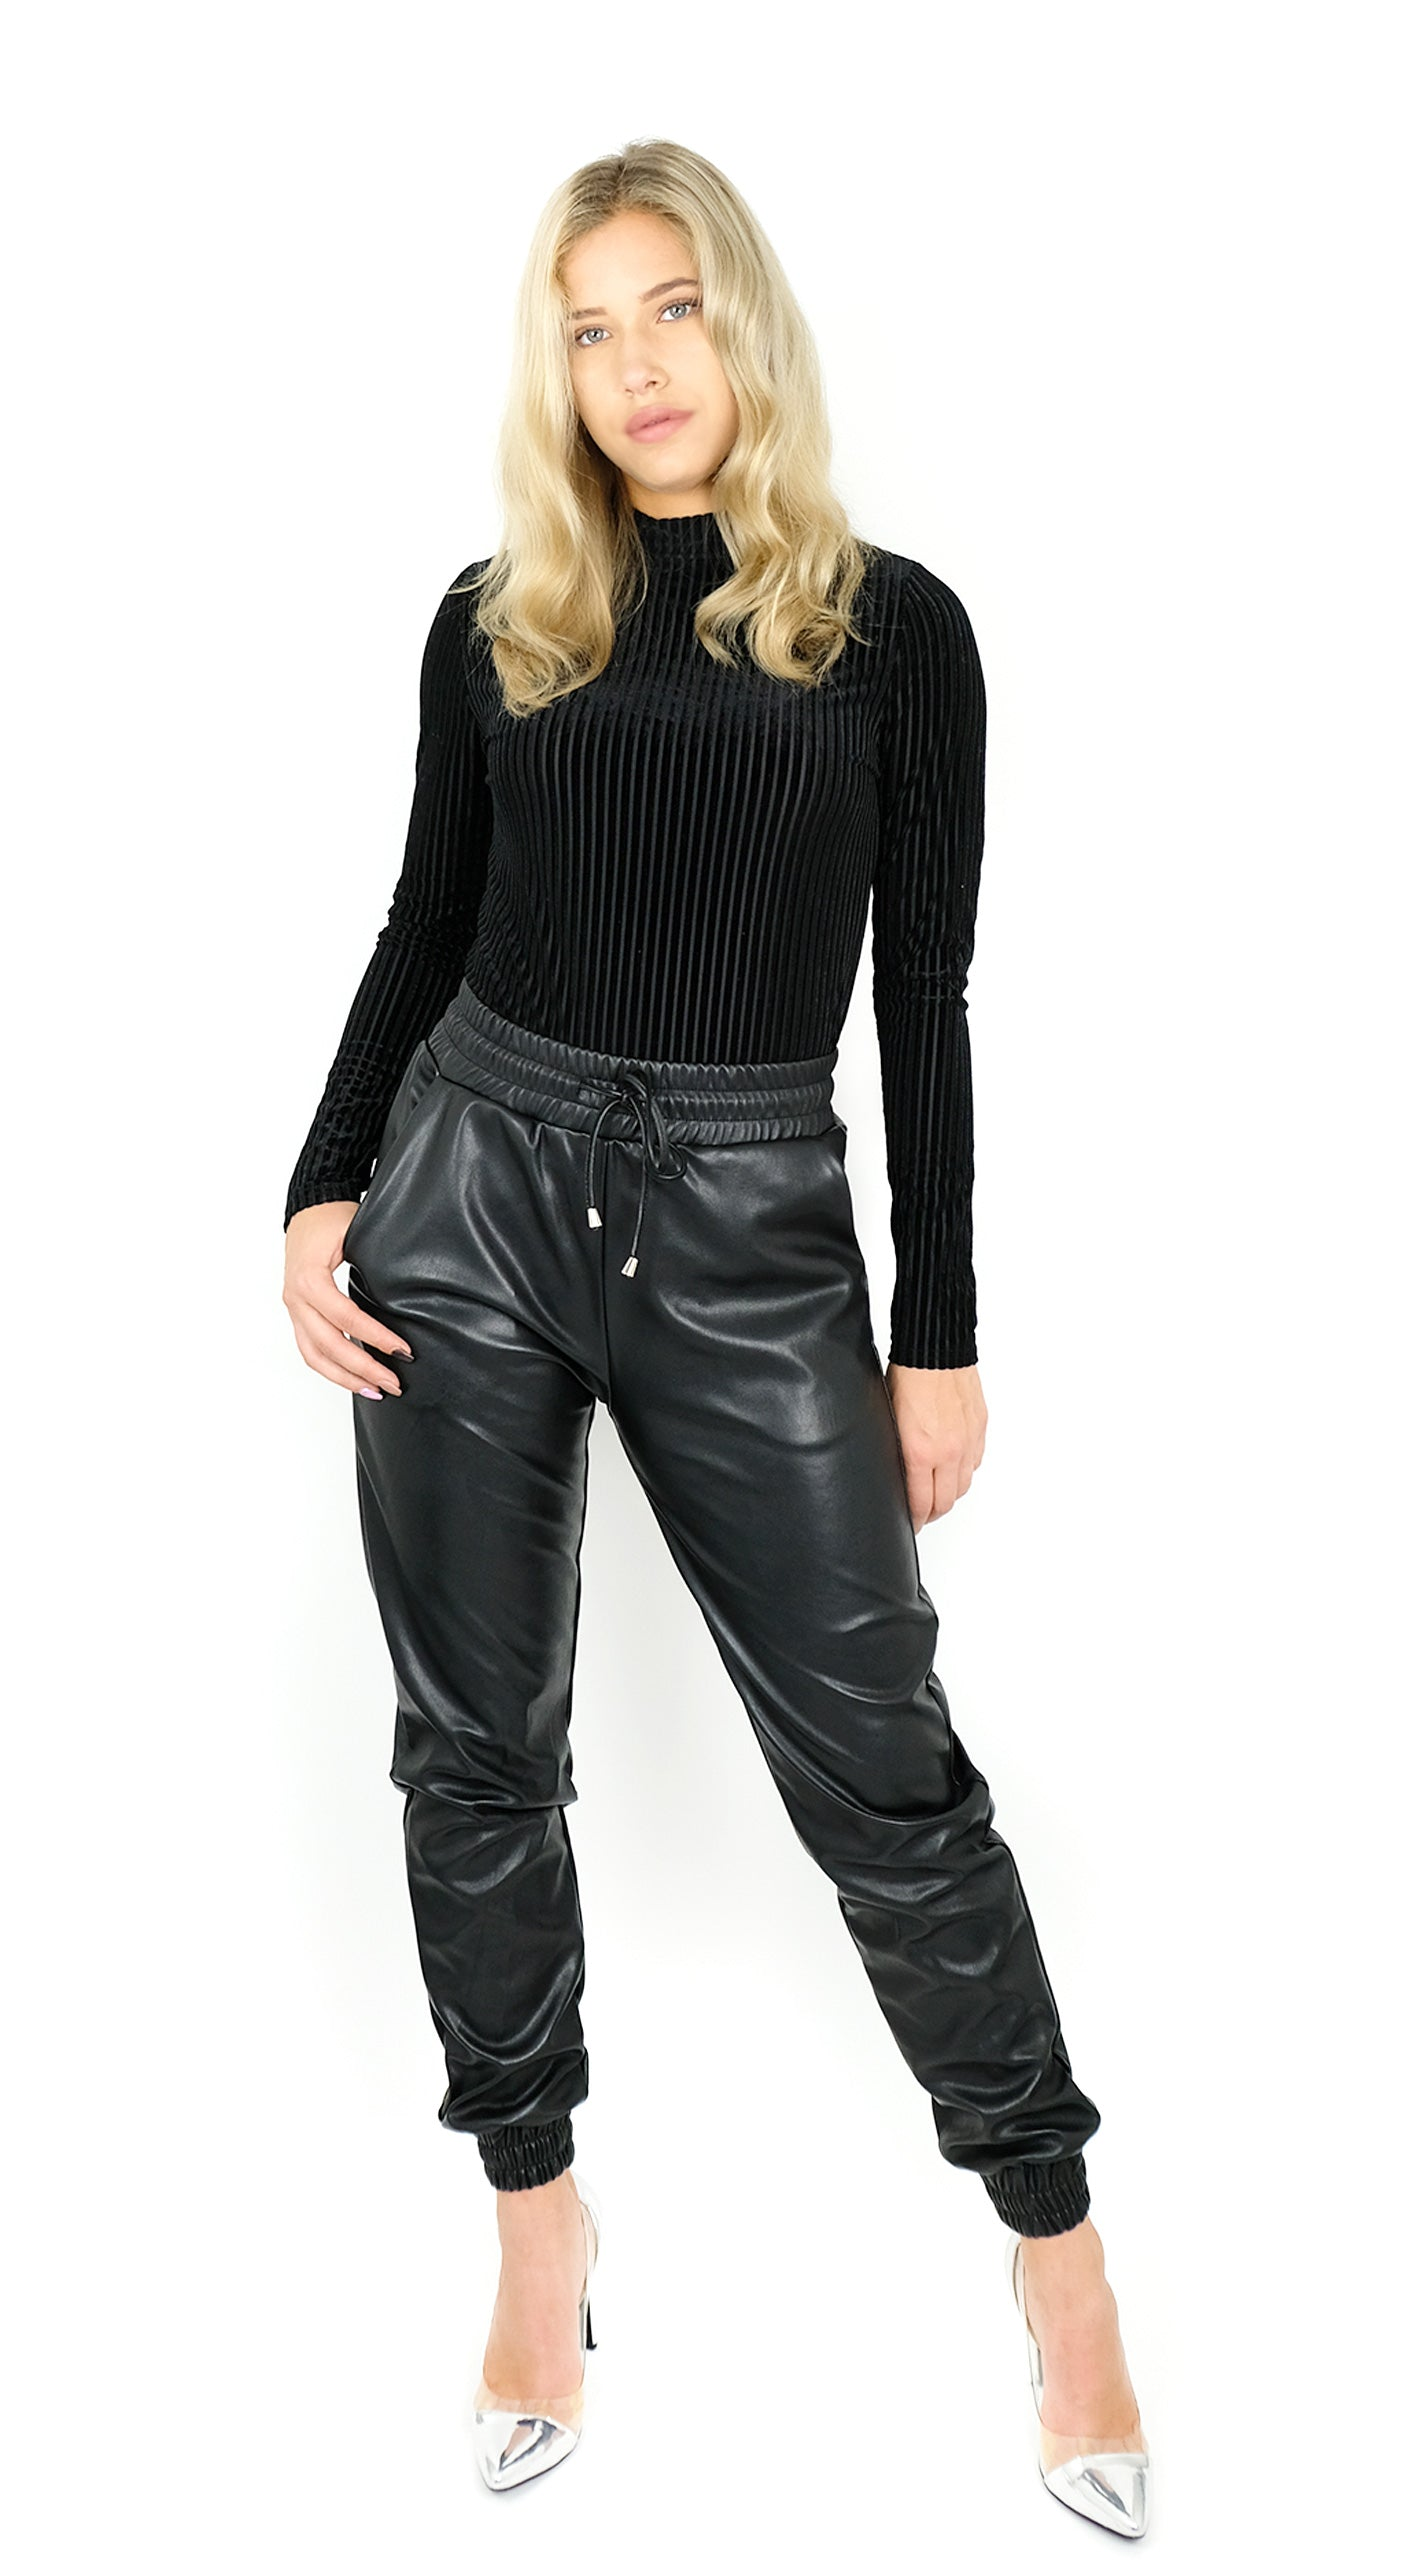 BUYLAU | LA SISTERS | Faux Leather Jogging Pants Black